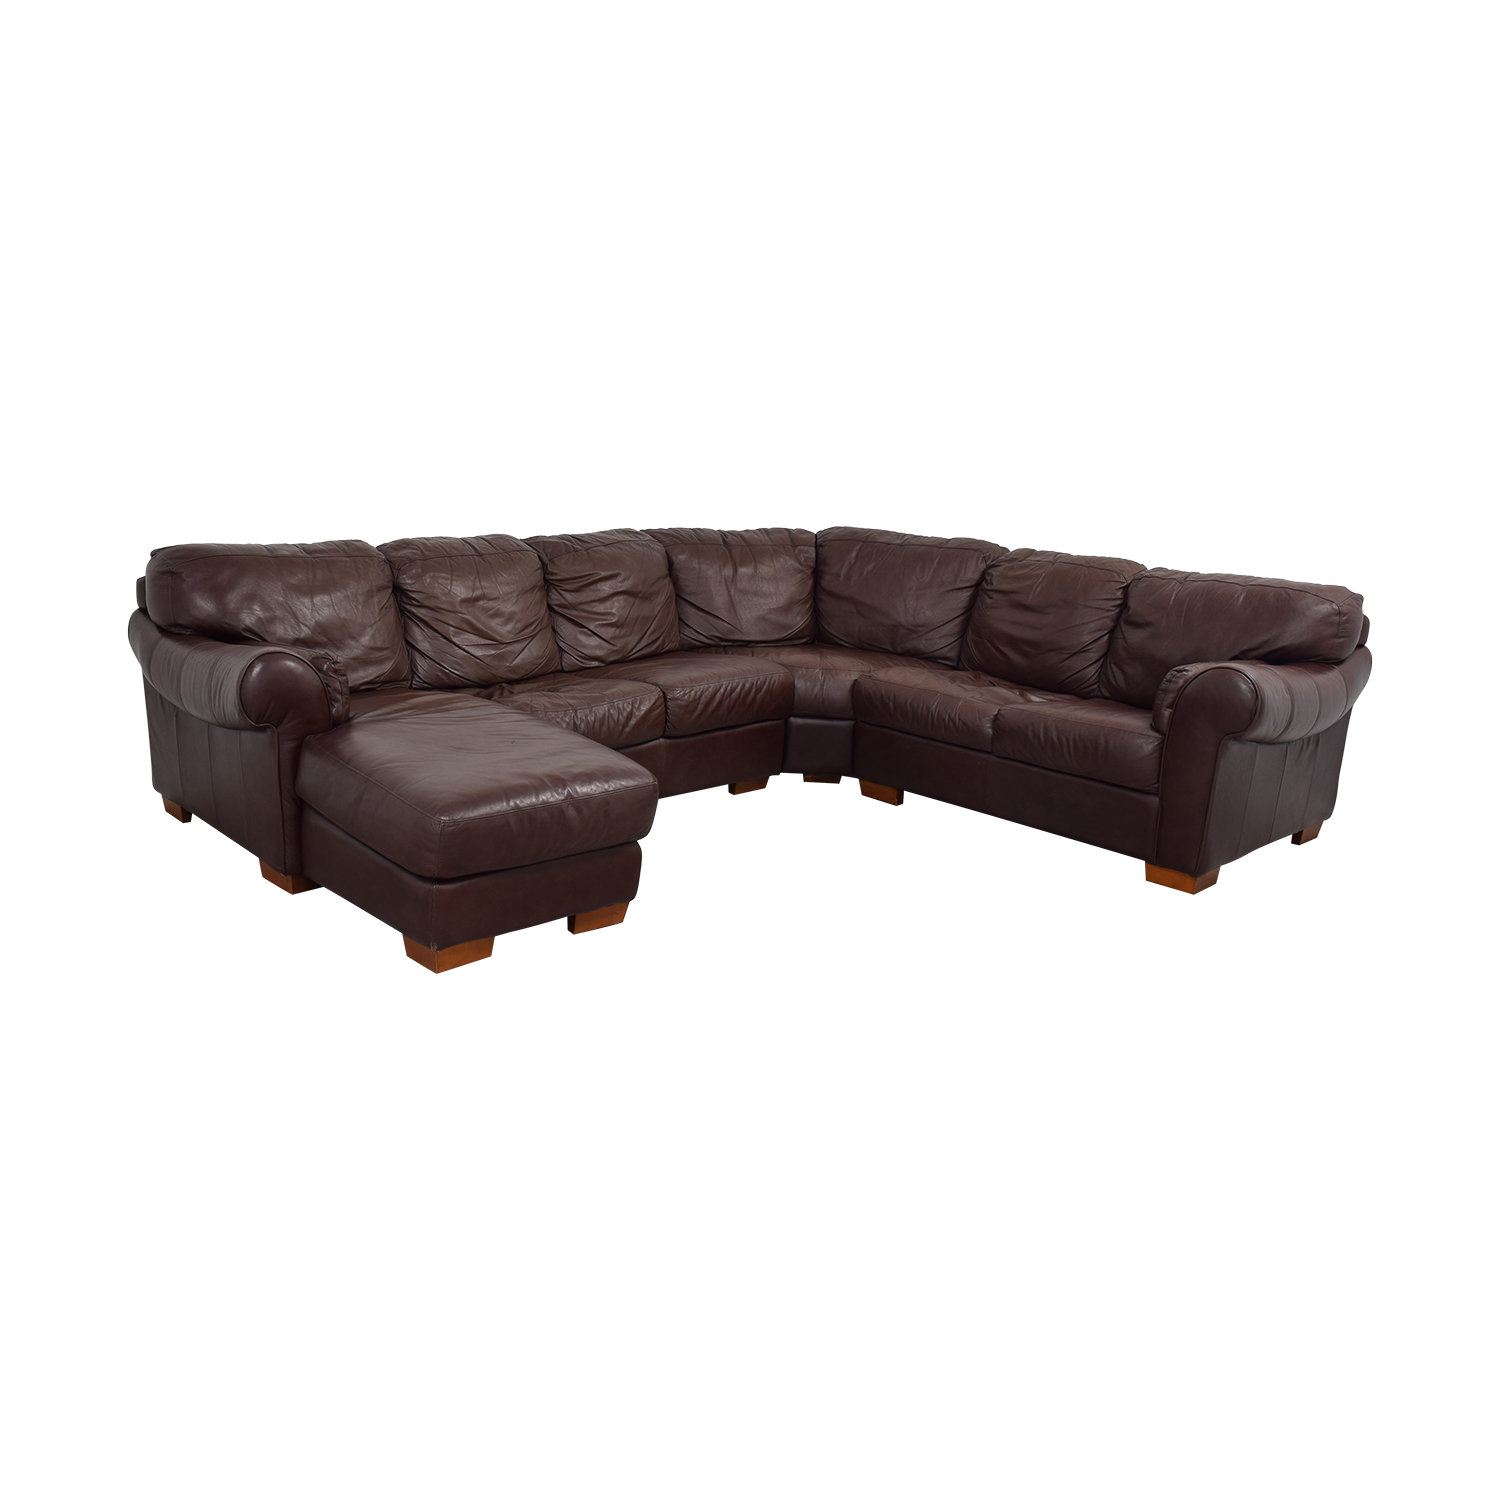 89% OFF - Chateau d\'Ax Chateau D\'Ax Divani Brown Leather L Sectional Couch  with Chaise / Sofas